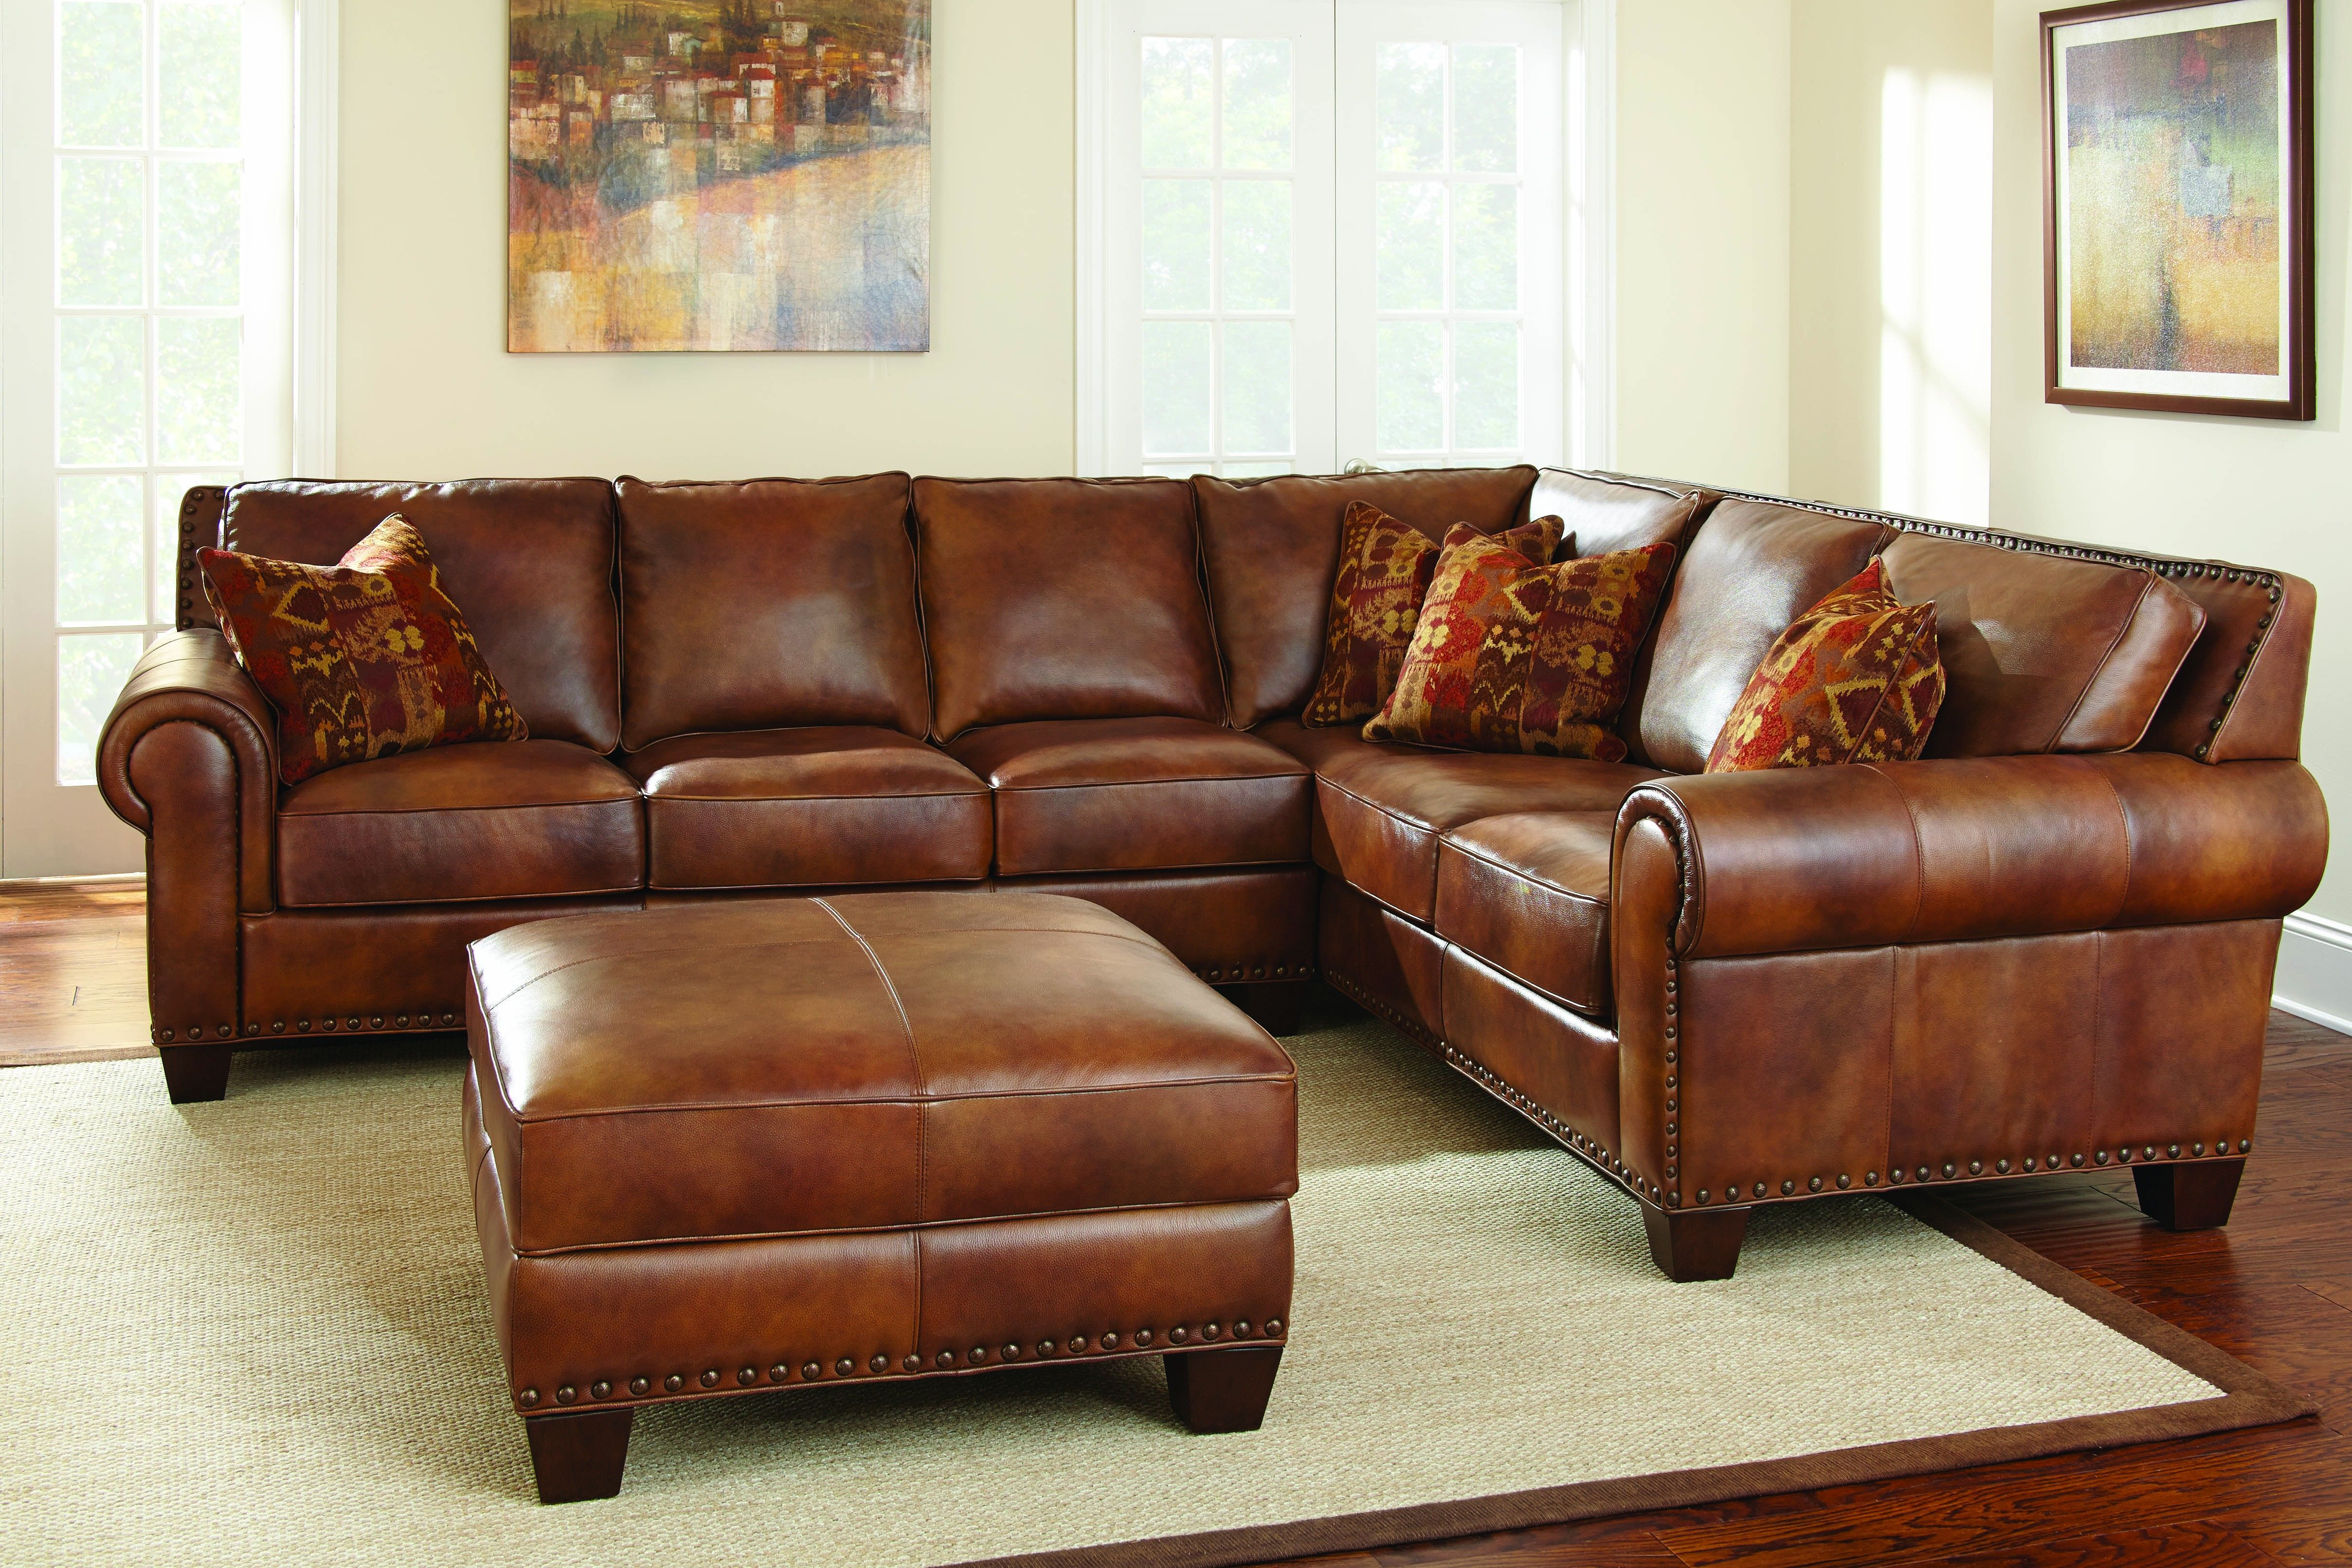 Modern Sofa Picture of Softline O uNeal Leather Sectional Sofa with Chaise Couches Pinterest